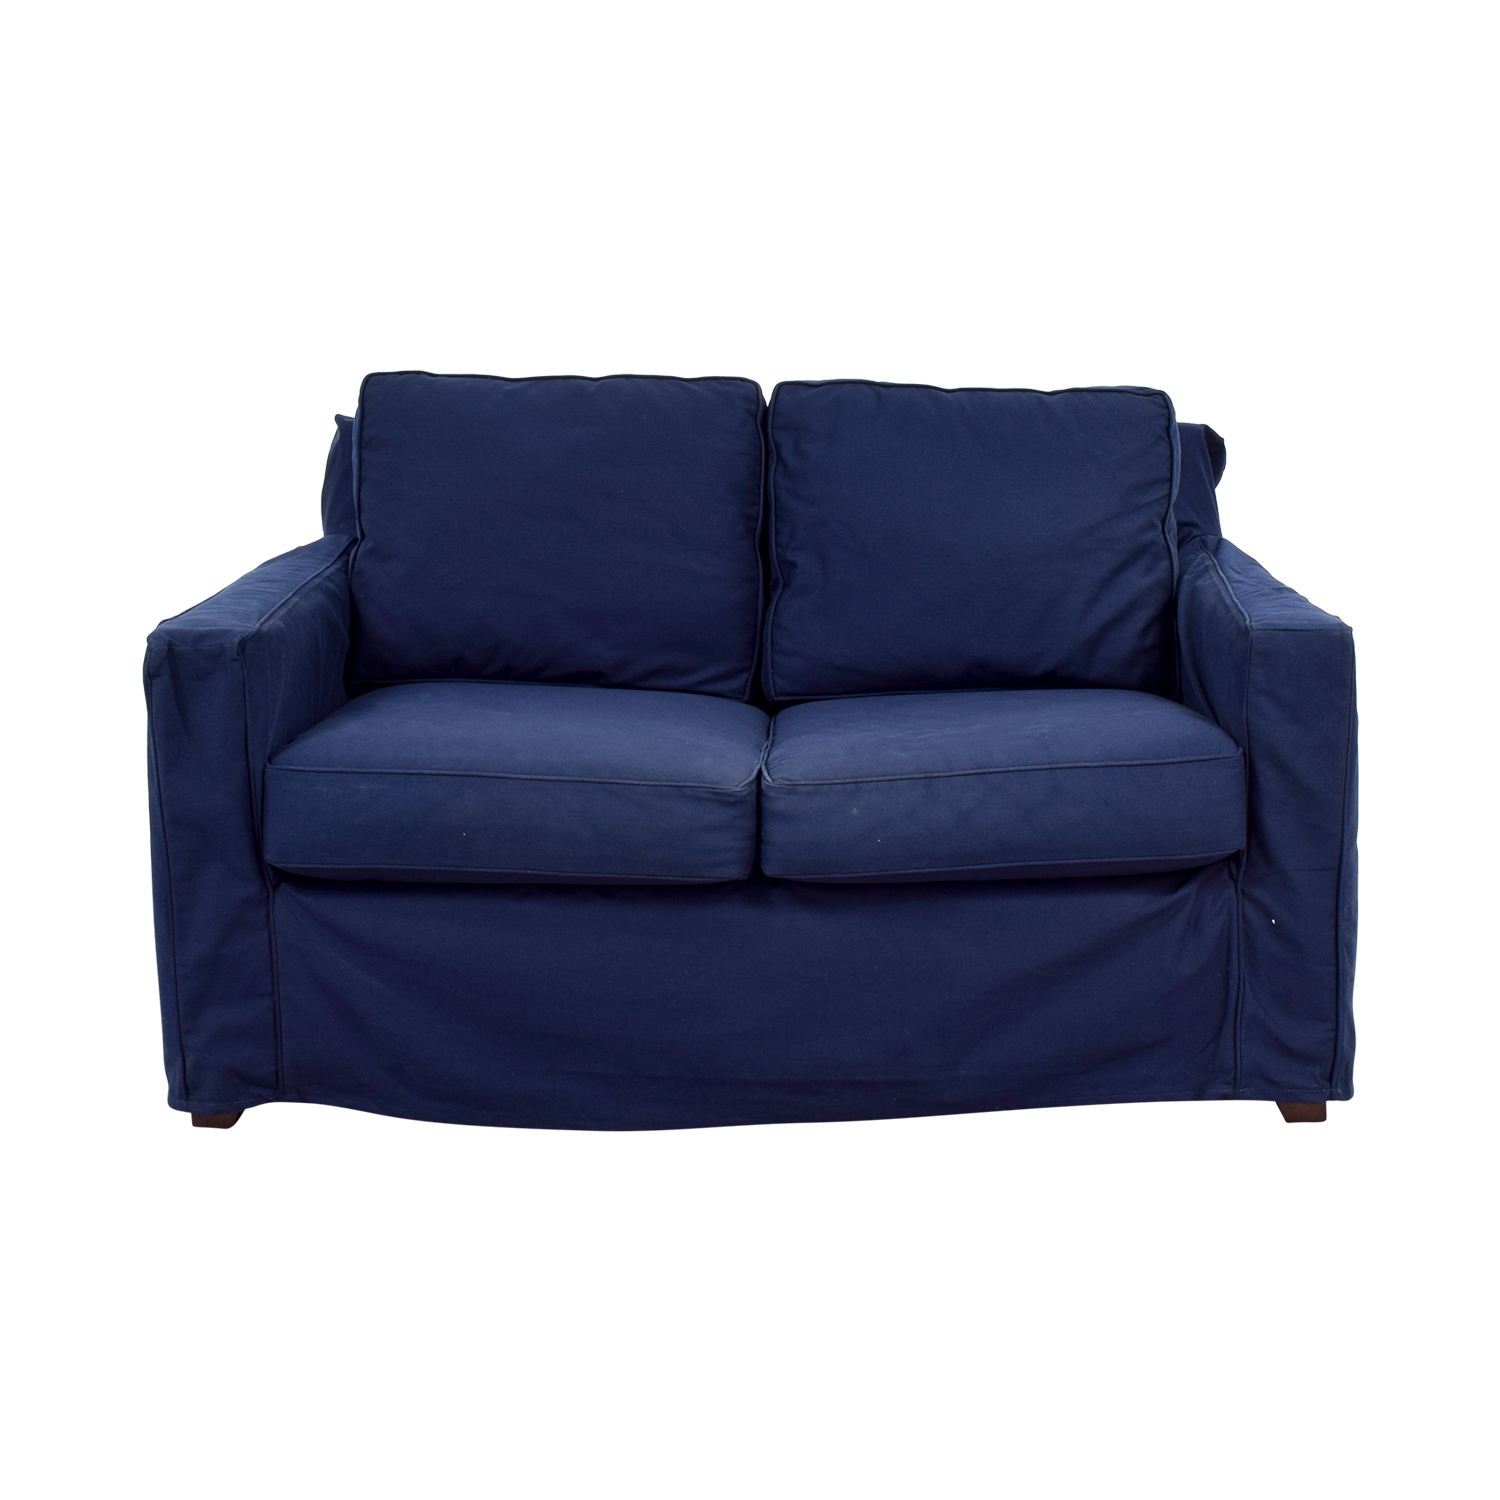 Pottery Barn Pottery Barn Cameron Navy Twill Slipcovered Loveseat for sale